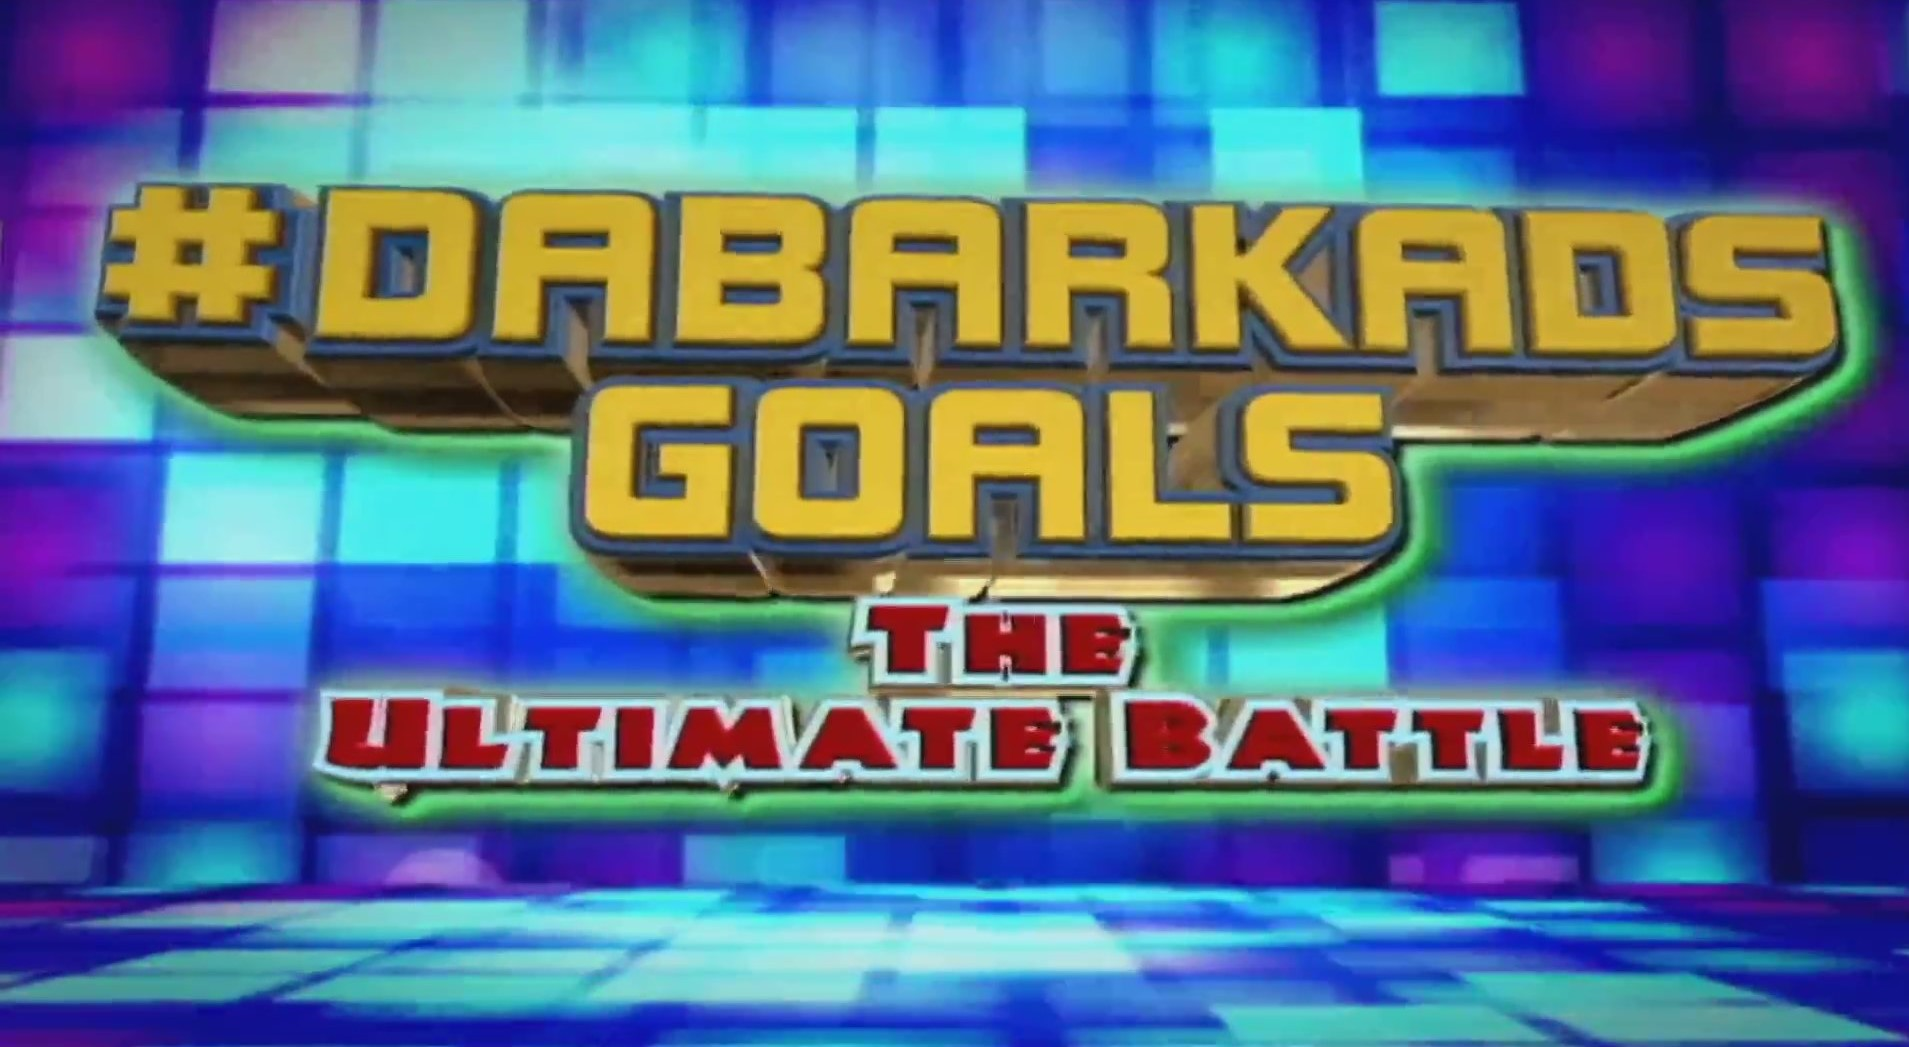 Dabarkads Goals: The Ultimate Battle